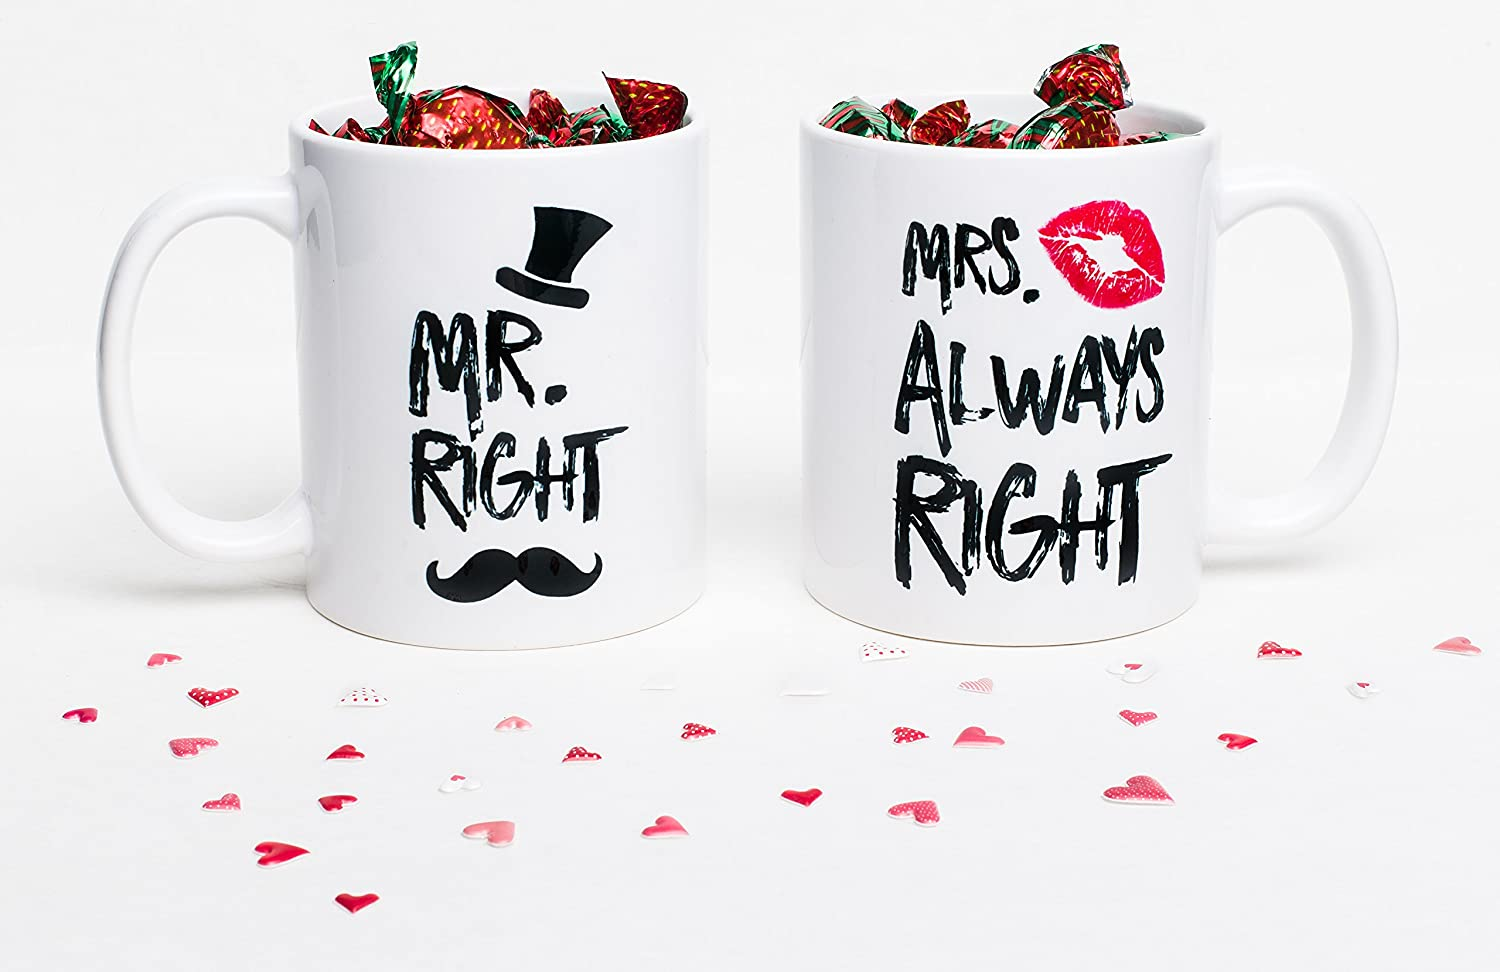 538dcd8b8 Amazon.com: Funny Wedding Gifts - Mr. Right and Mrs. Always Right Coffee  Novelty Mug Set - Engagement Gifts for Couples: Kitchen & Dining